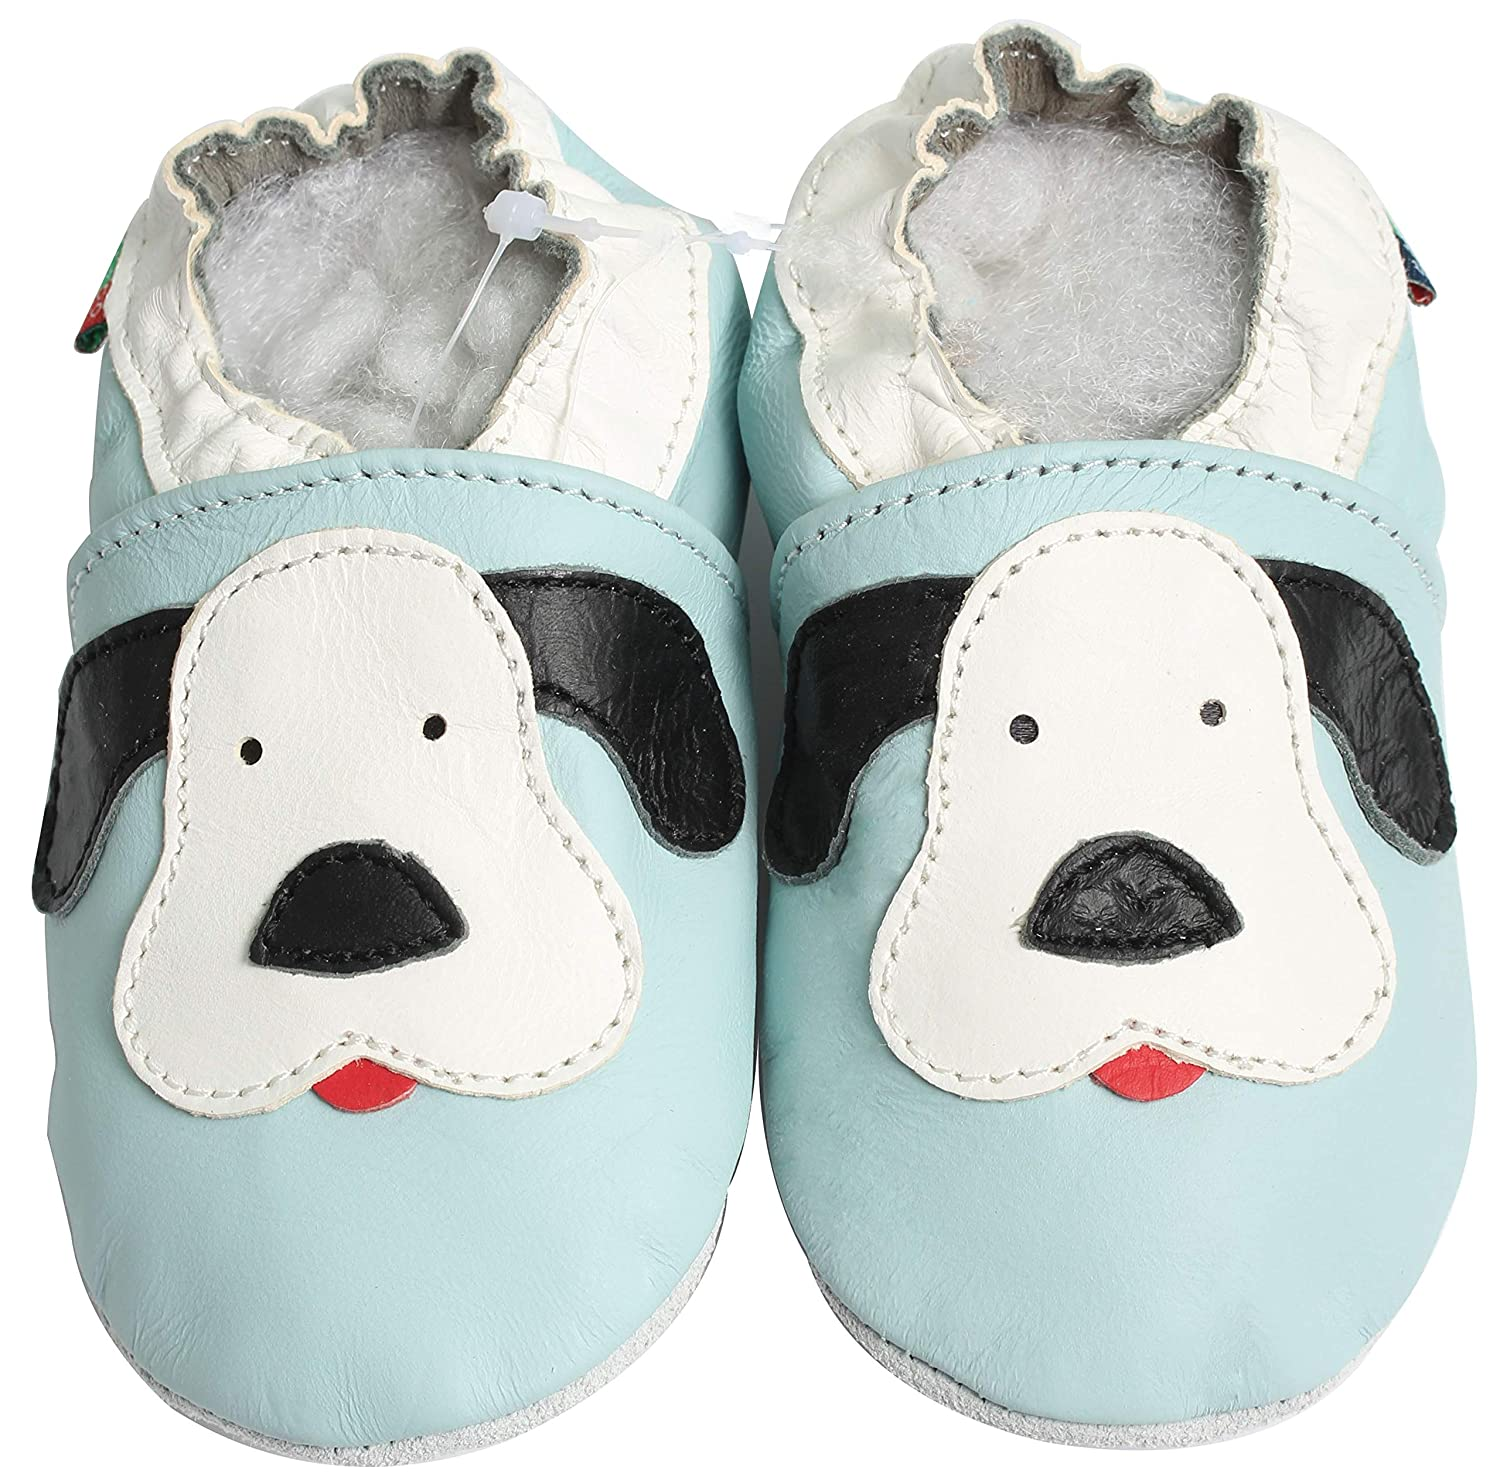 Carozoo Soft Sole Leather Shoes Baby Socks Slippers Sneakers Prewalkers up to 4 Yrs 16 Designs